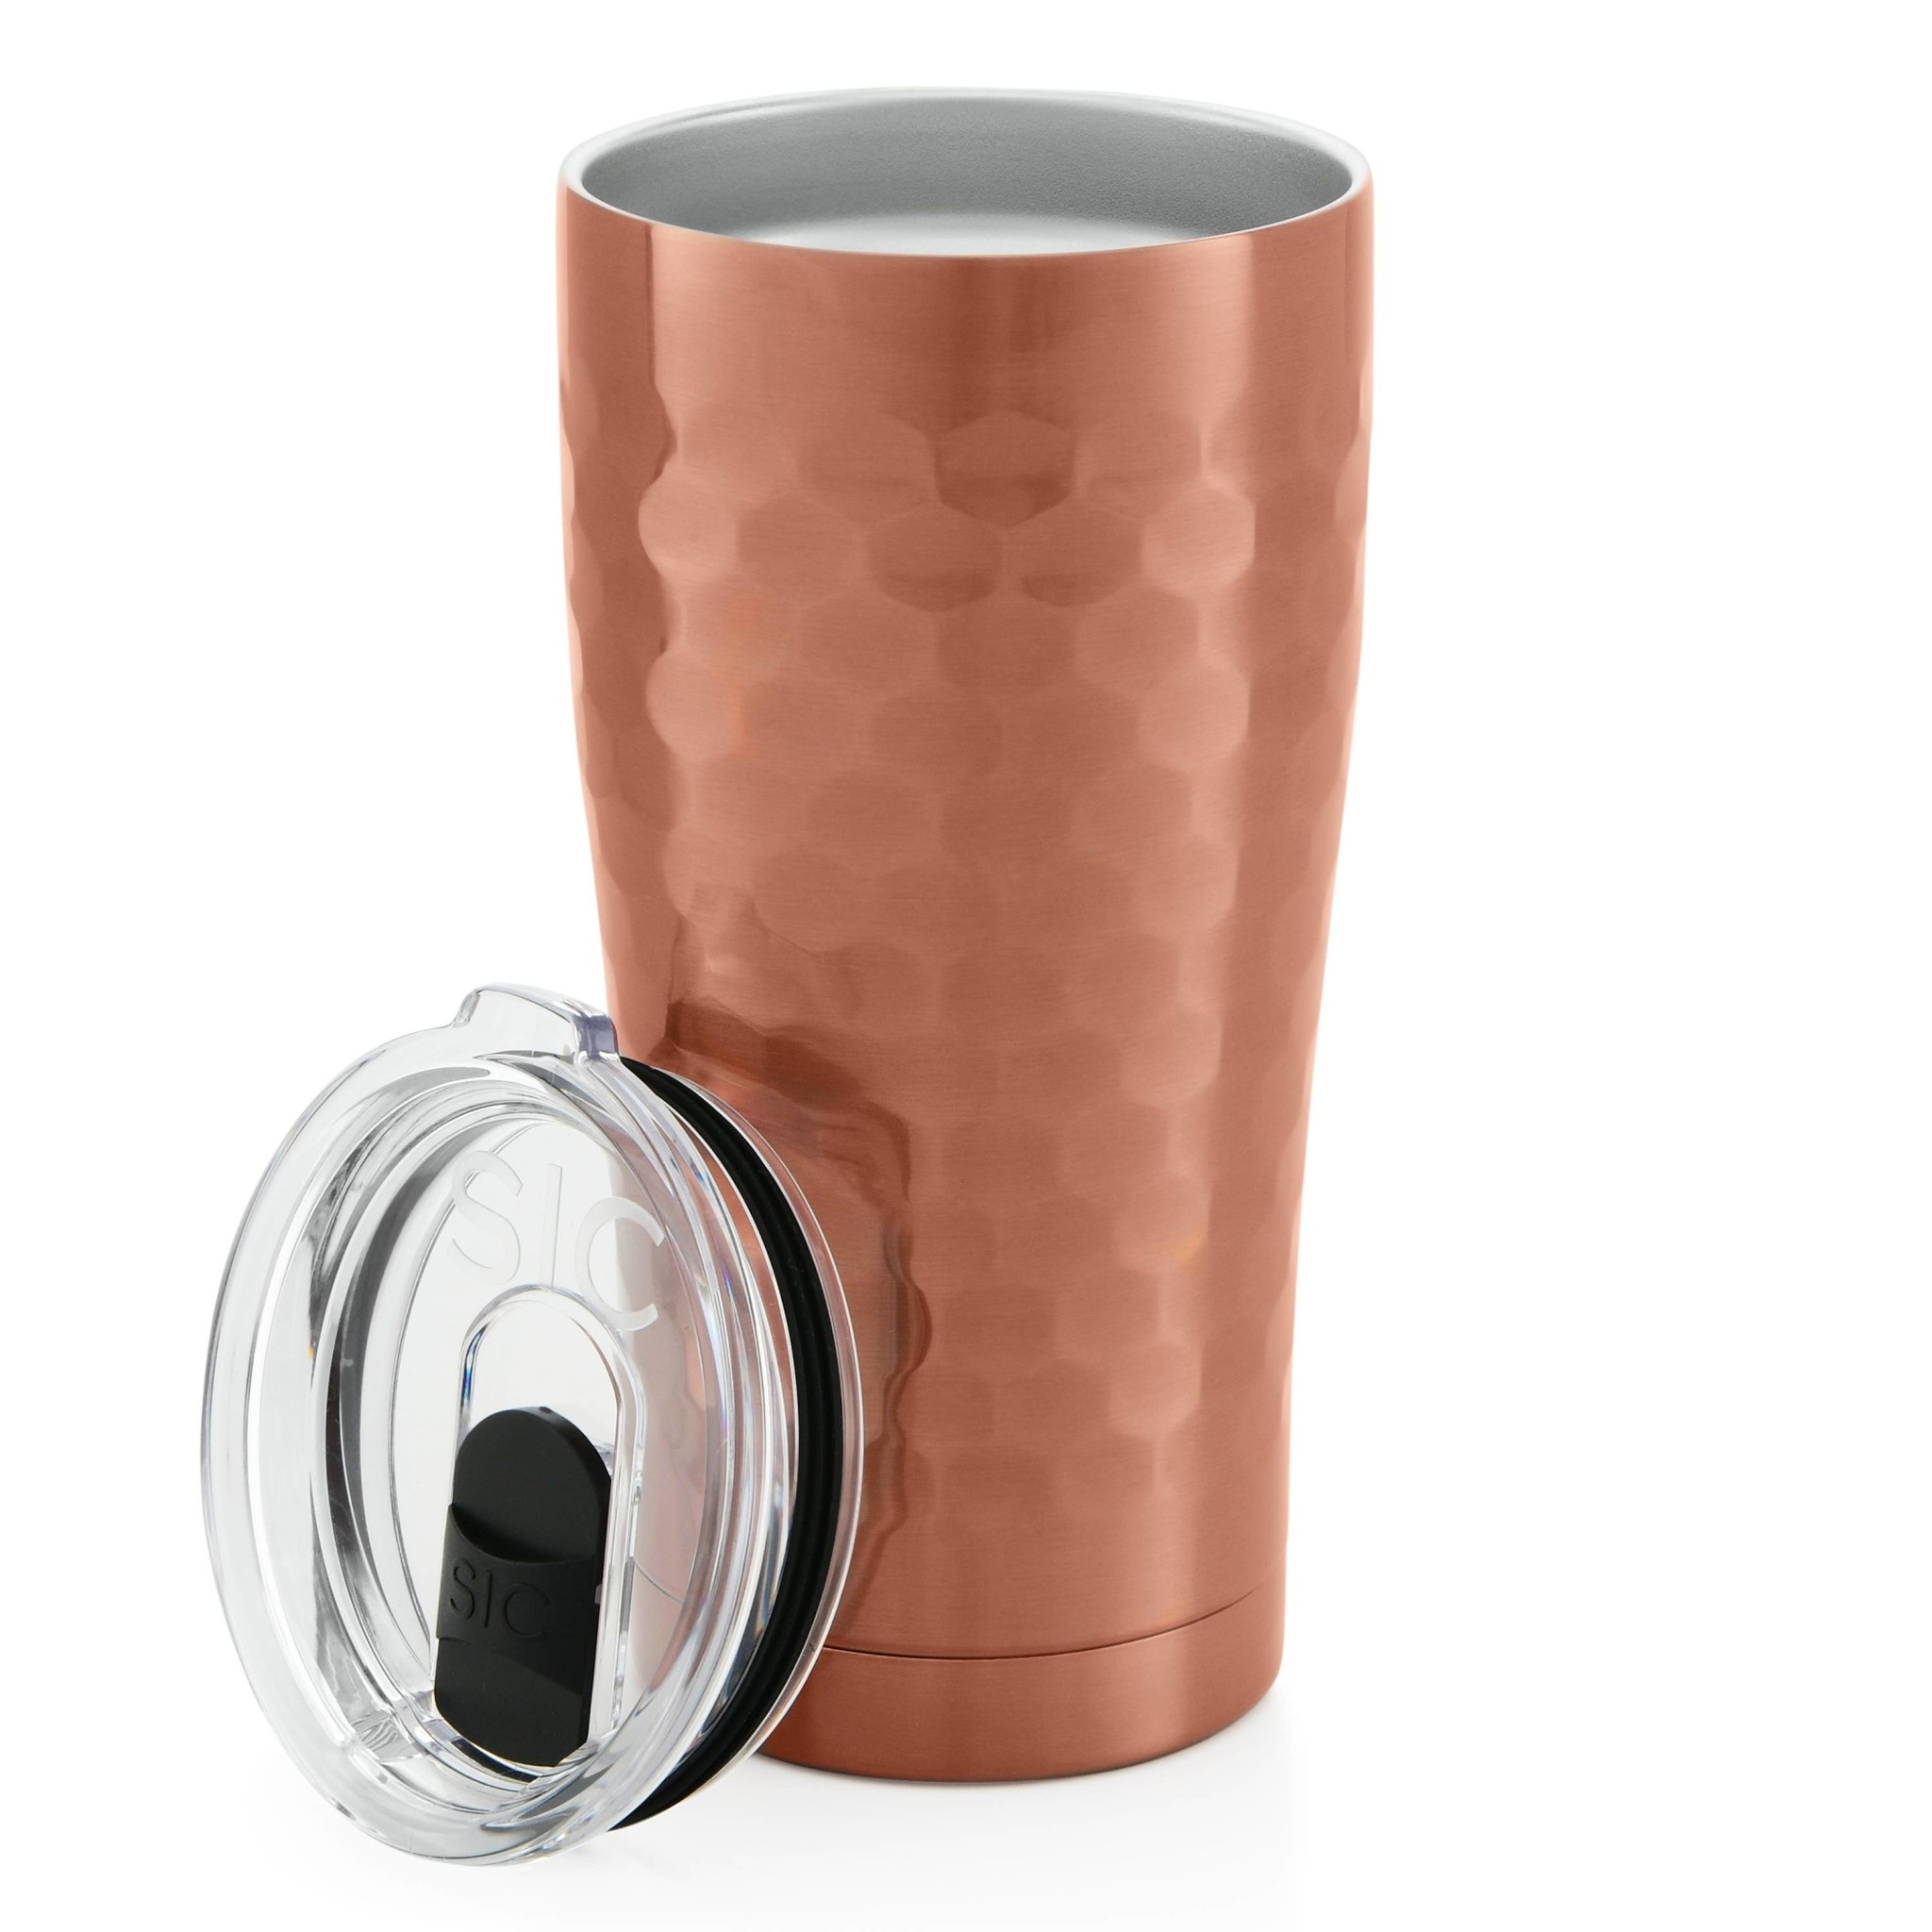 SIC 20 oz Hammered Copper Tumbler, Stainless Steel, SIC